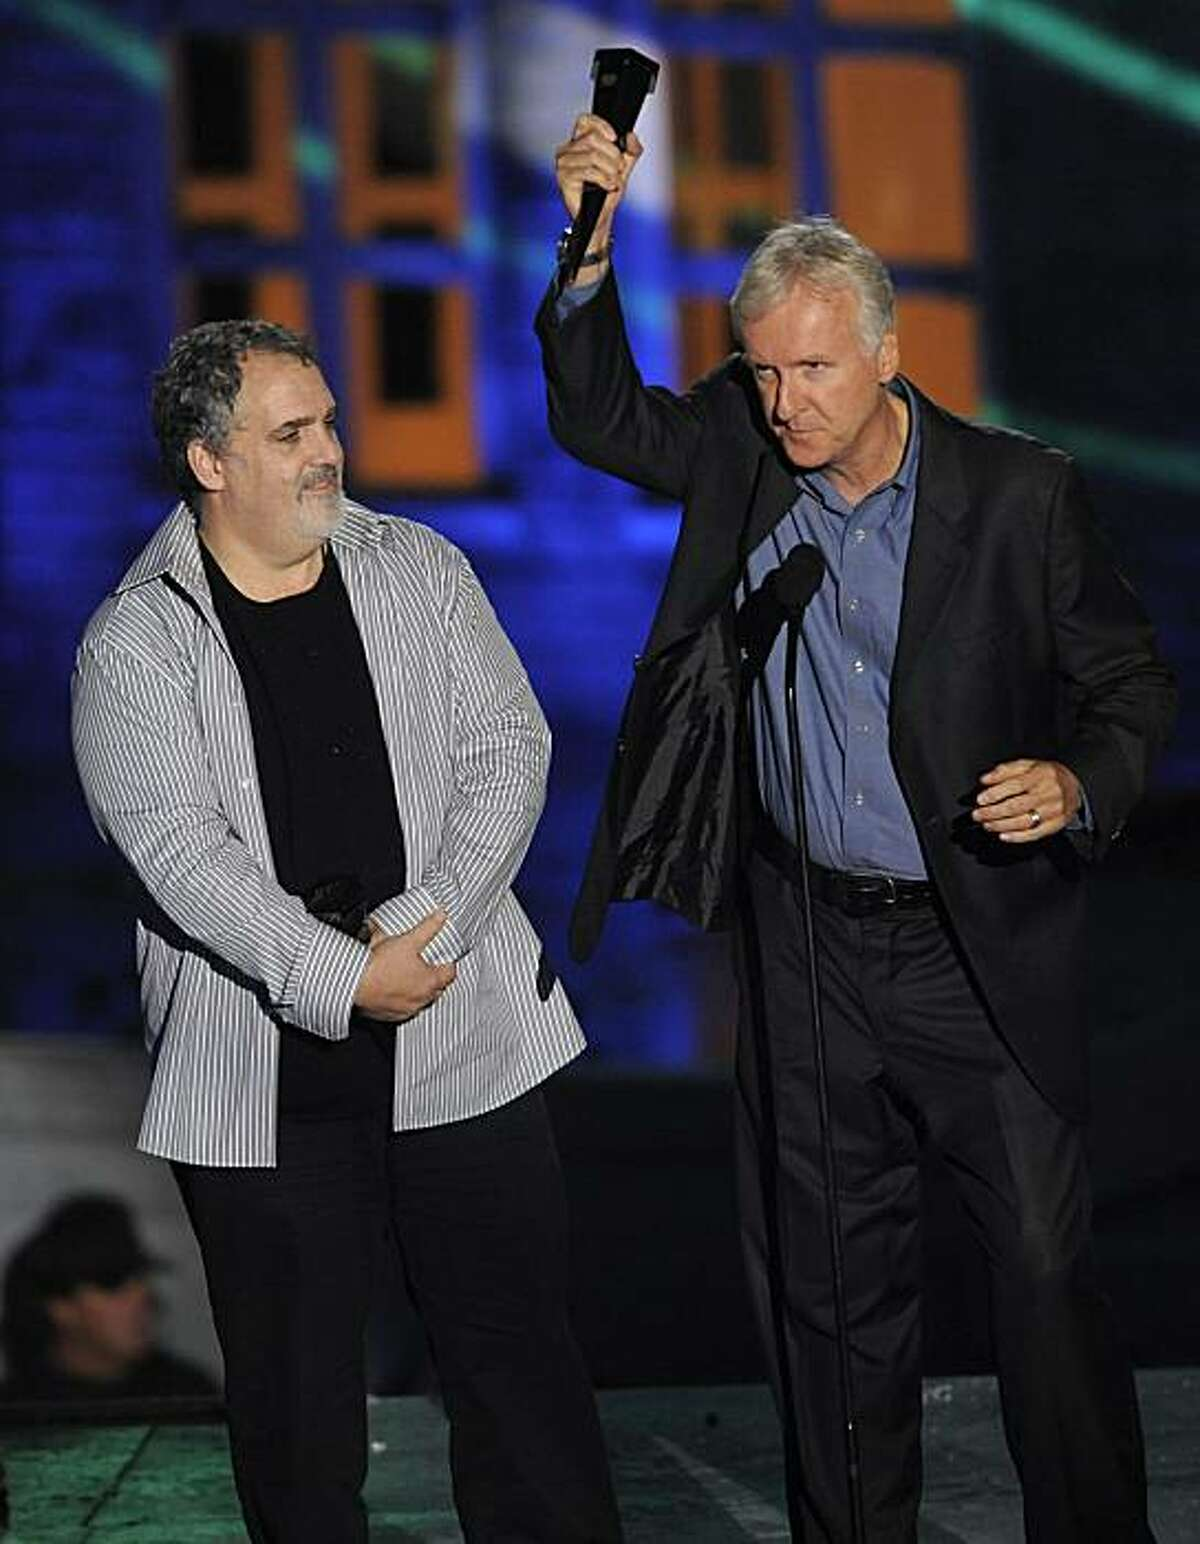 Jon Landau, left, and James Cameron accept the award for 3D Top 3, for Avatar, at the Scream Awards on Saturday Oct. 16, 2010, in Los Angeles.